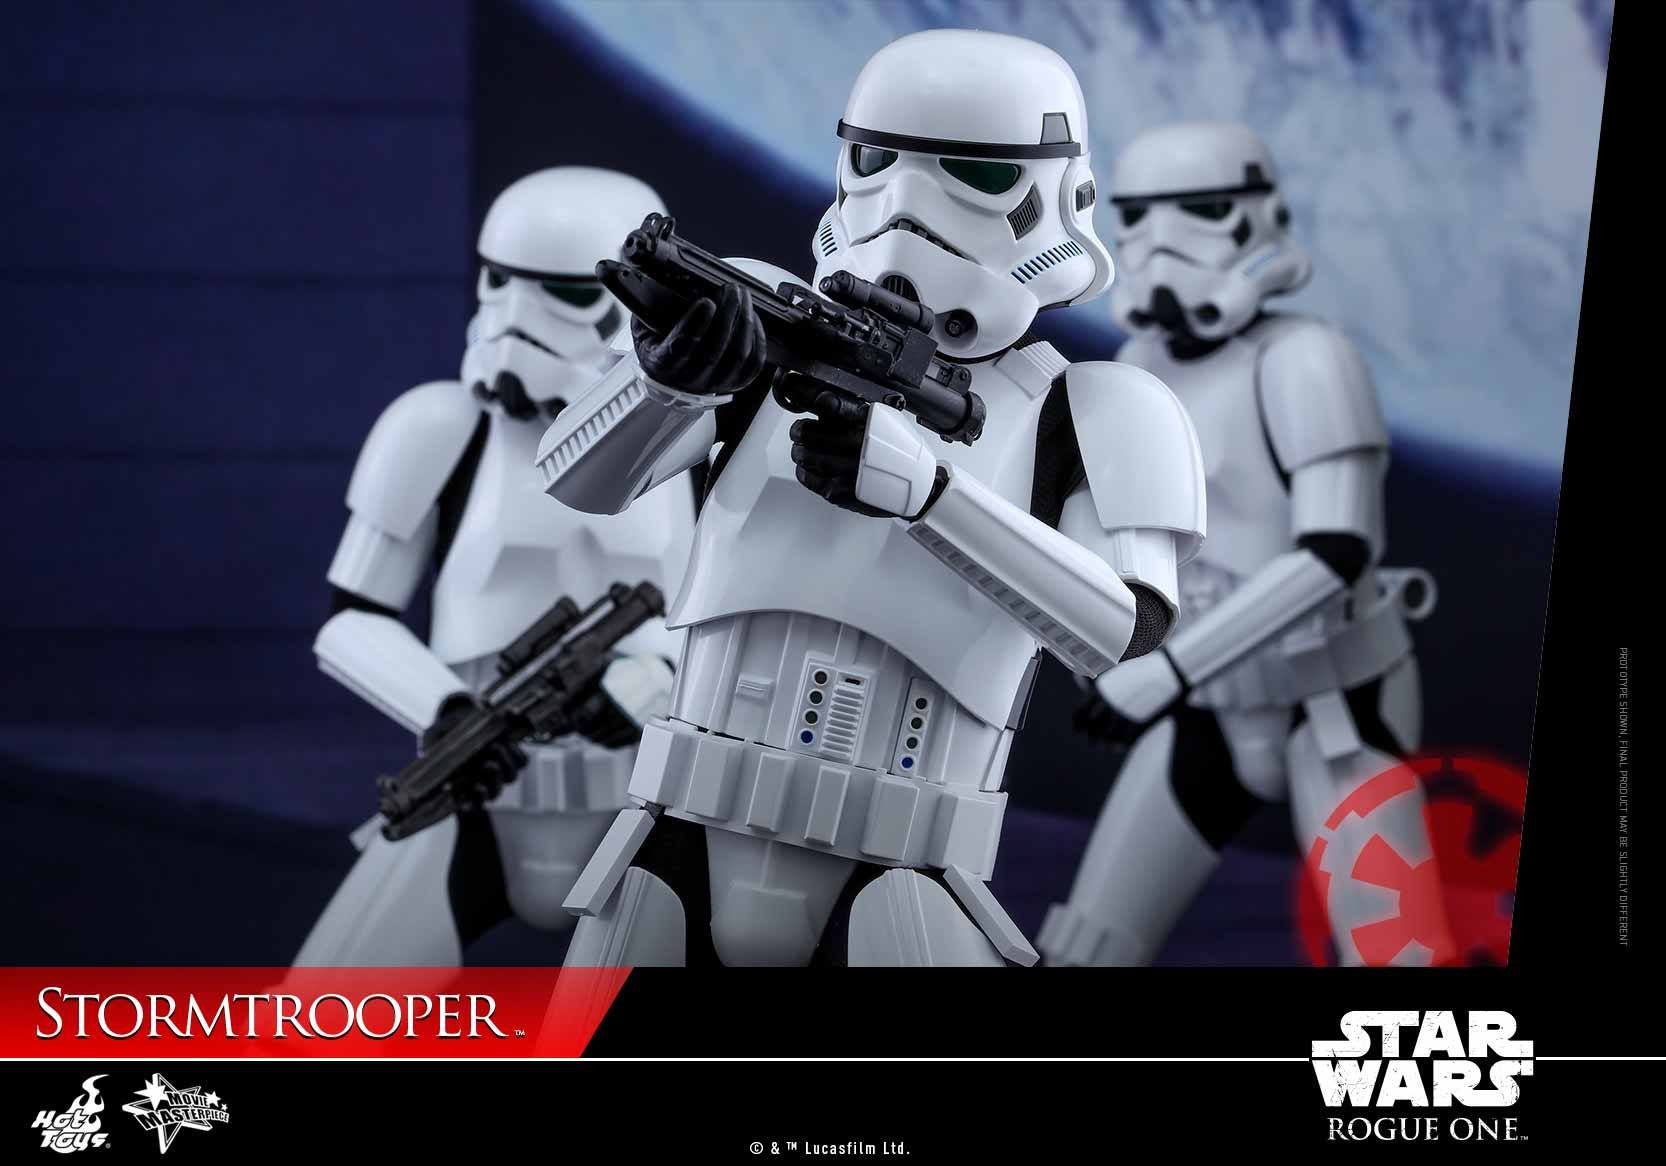 Hot Toys - MMS393 - Rogue One: A Star Wars Story - Stormtrooper - Marvelous Toys - 8